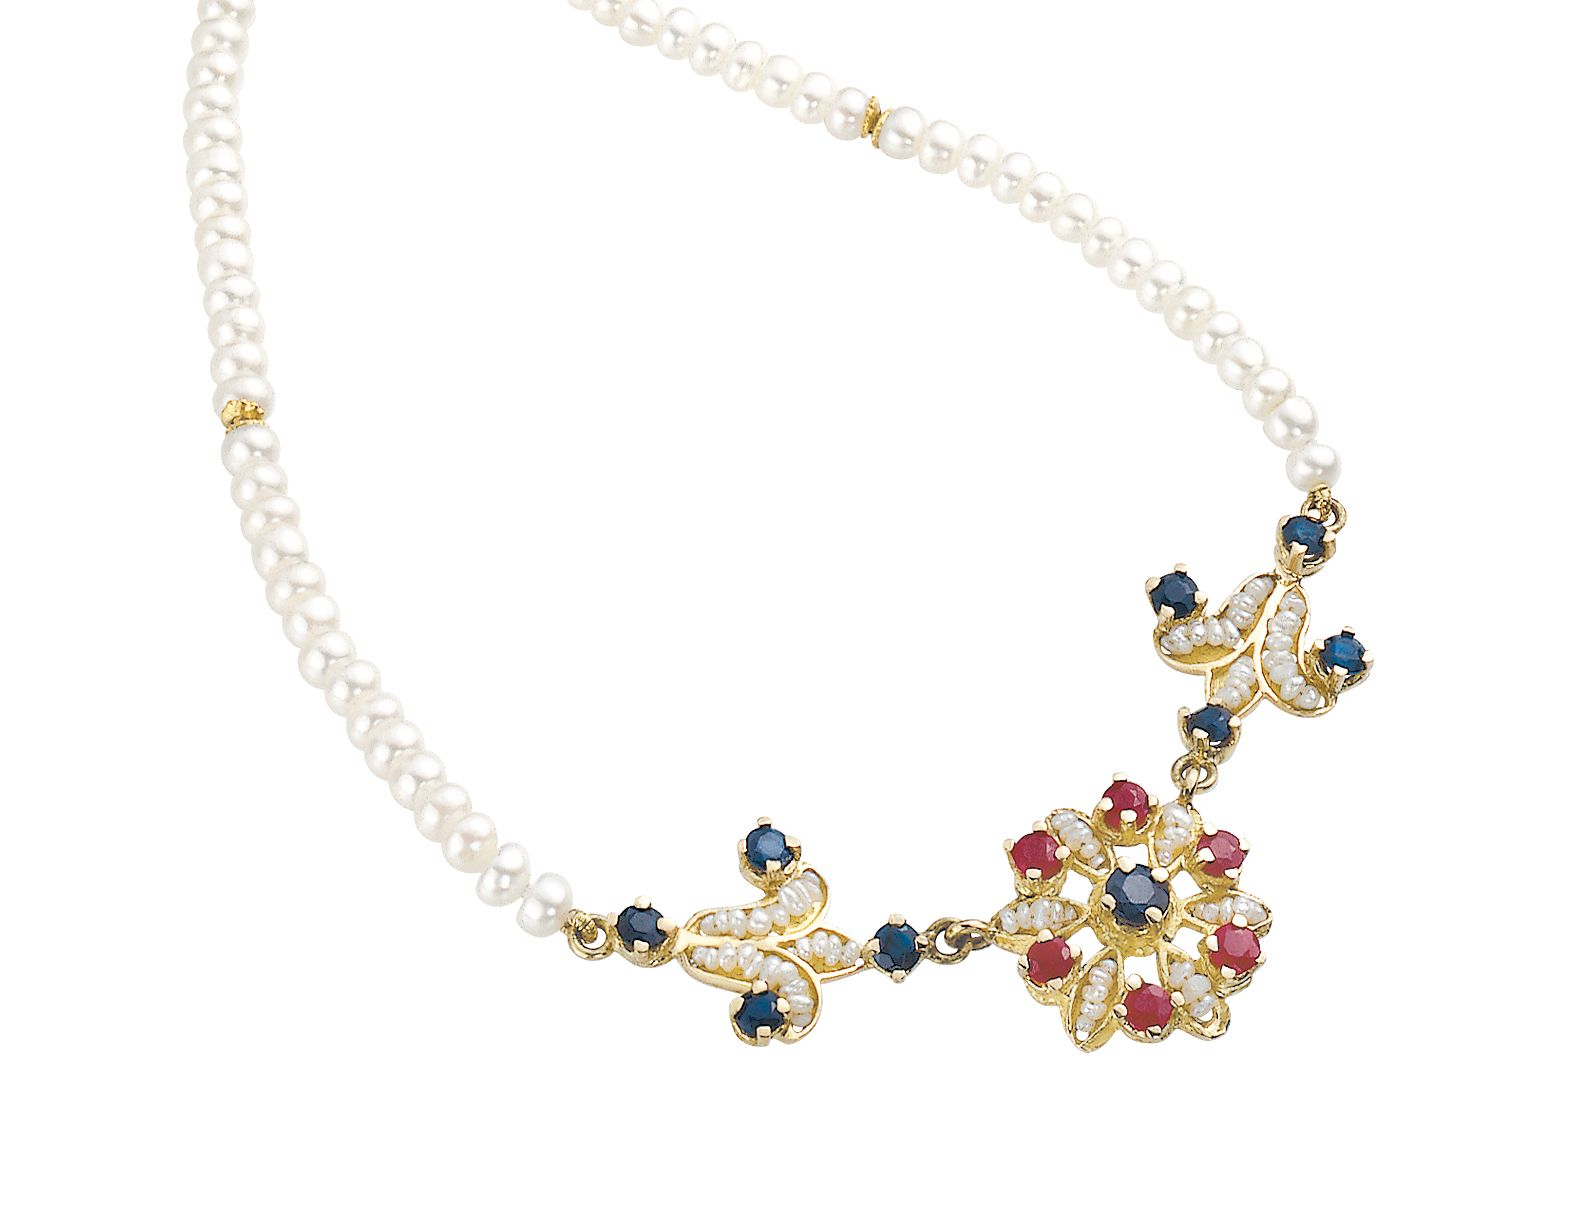 Gold Necklace with Pearls and precious Stones (13062)